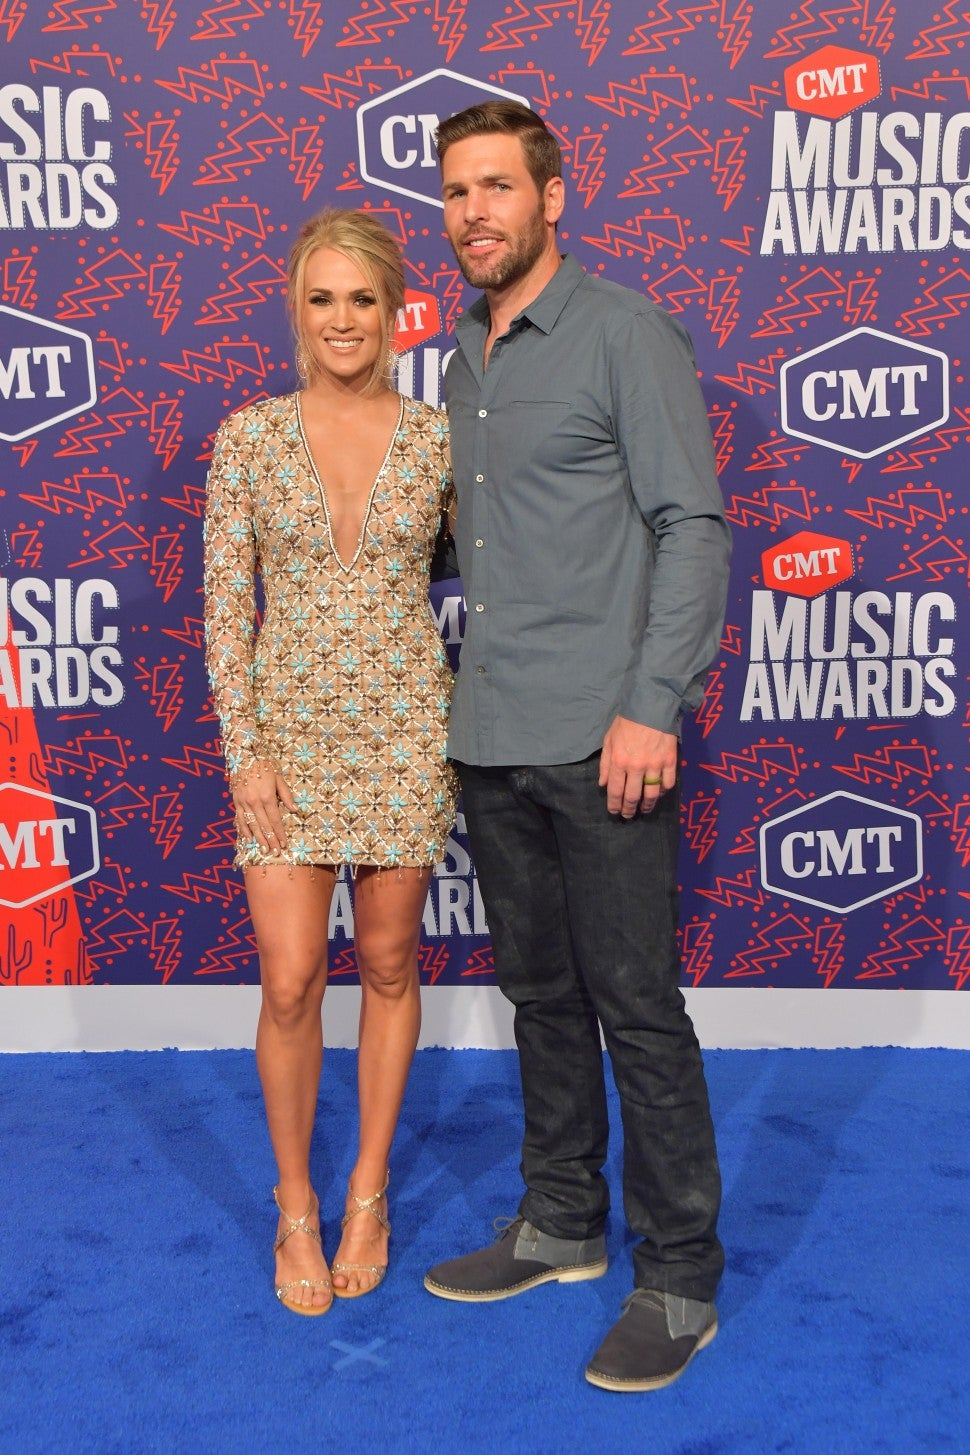 Carrie Underwood and Mike Fisher 2019 CMT Awards